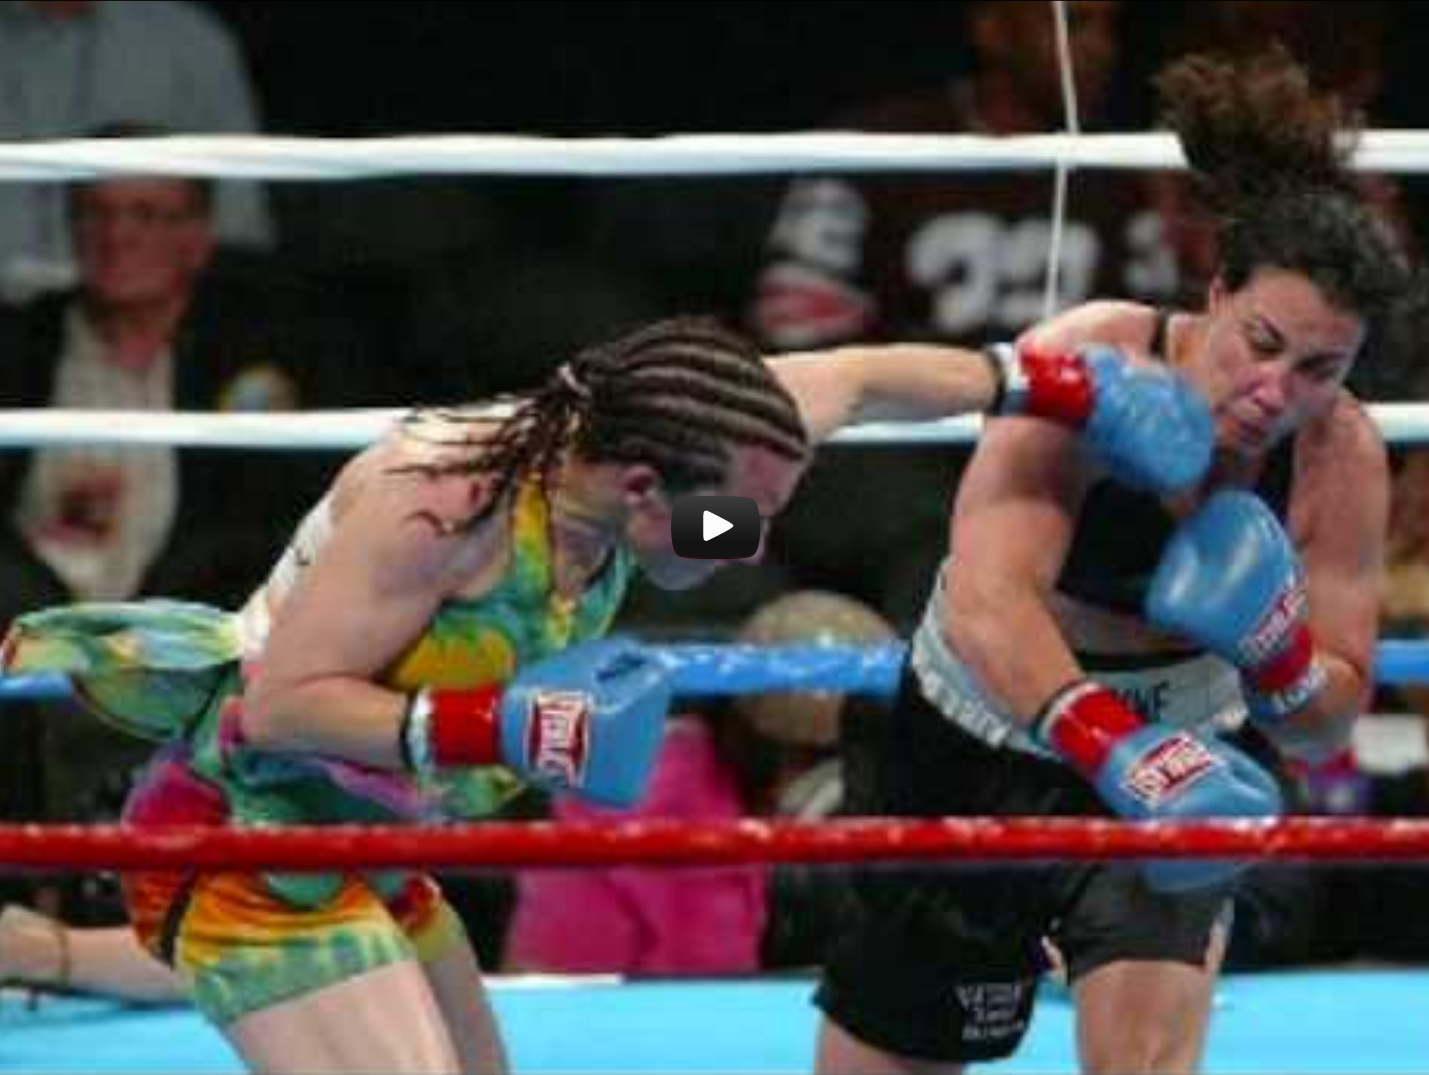 Sumya Anani Boxing Video Compilation